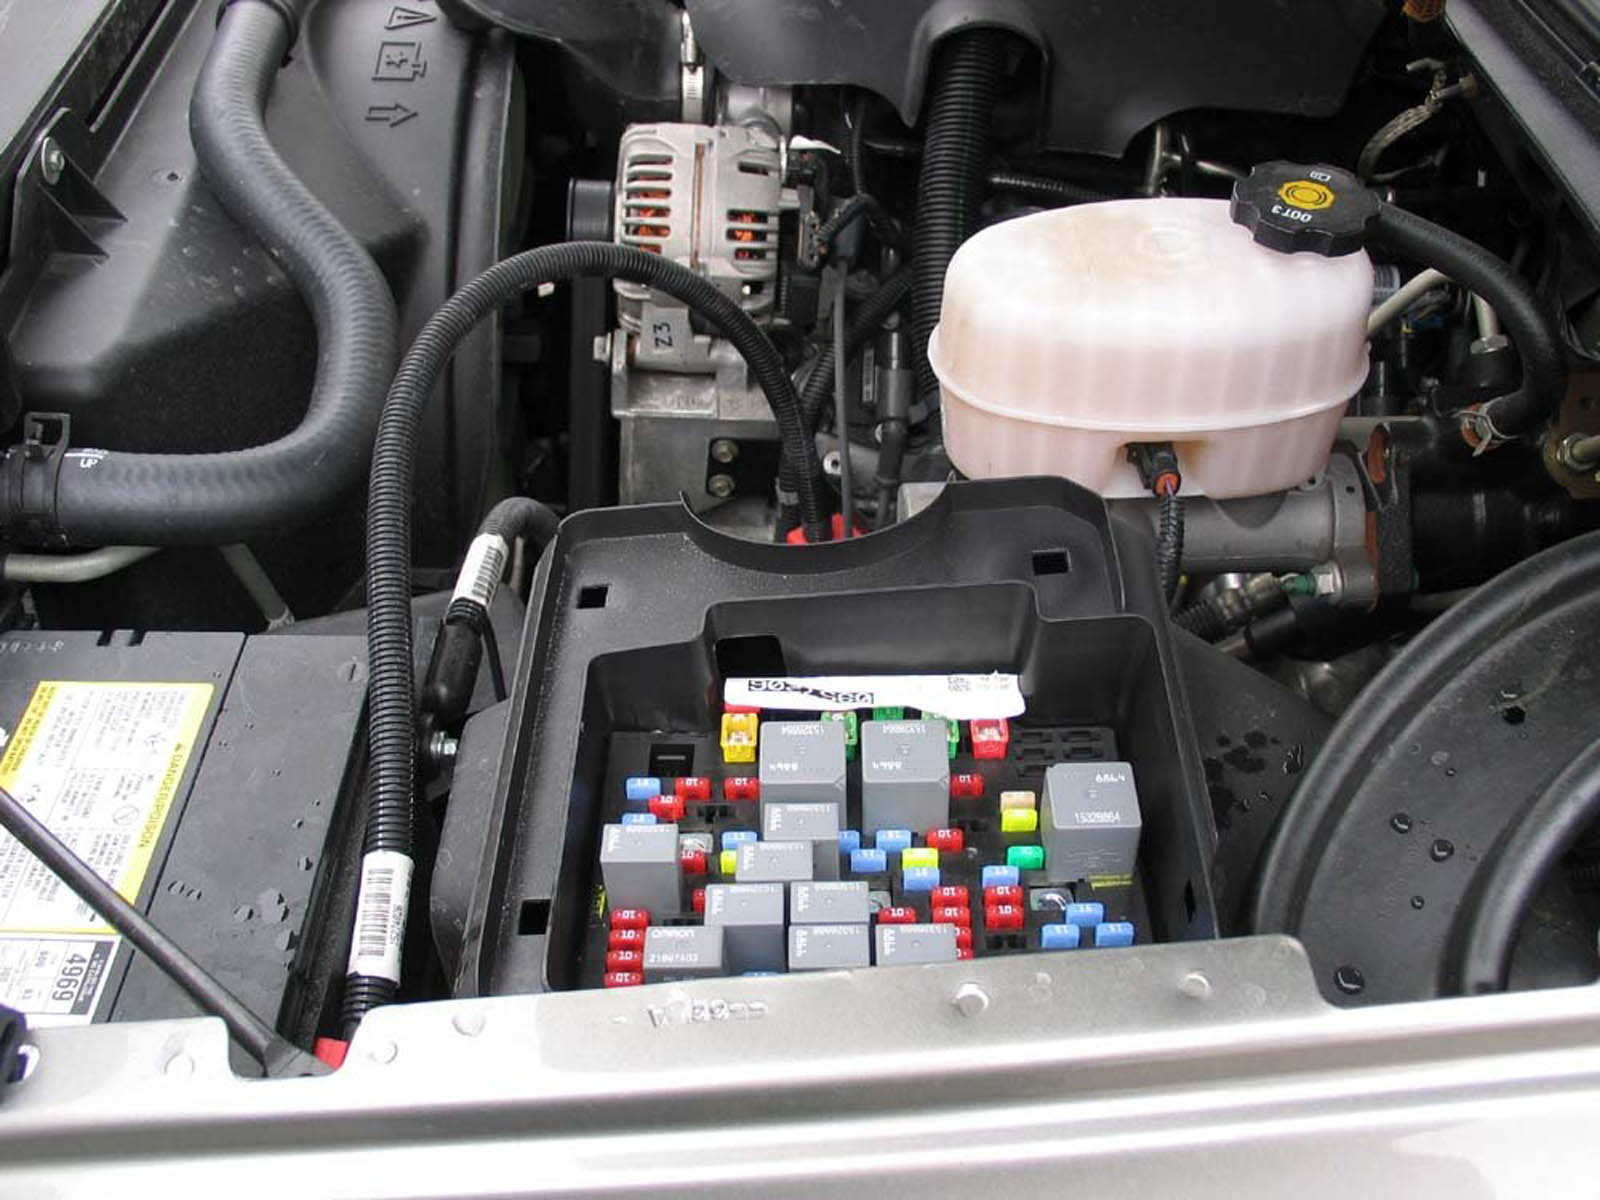 MMMay 27 Fuse Box 04 69845 chevrolet silverado gmt800 1999 2006 fuse box diagram chevroletforum  at bayanpartner.co